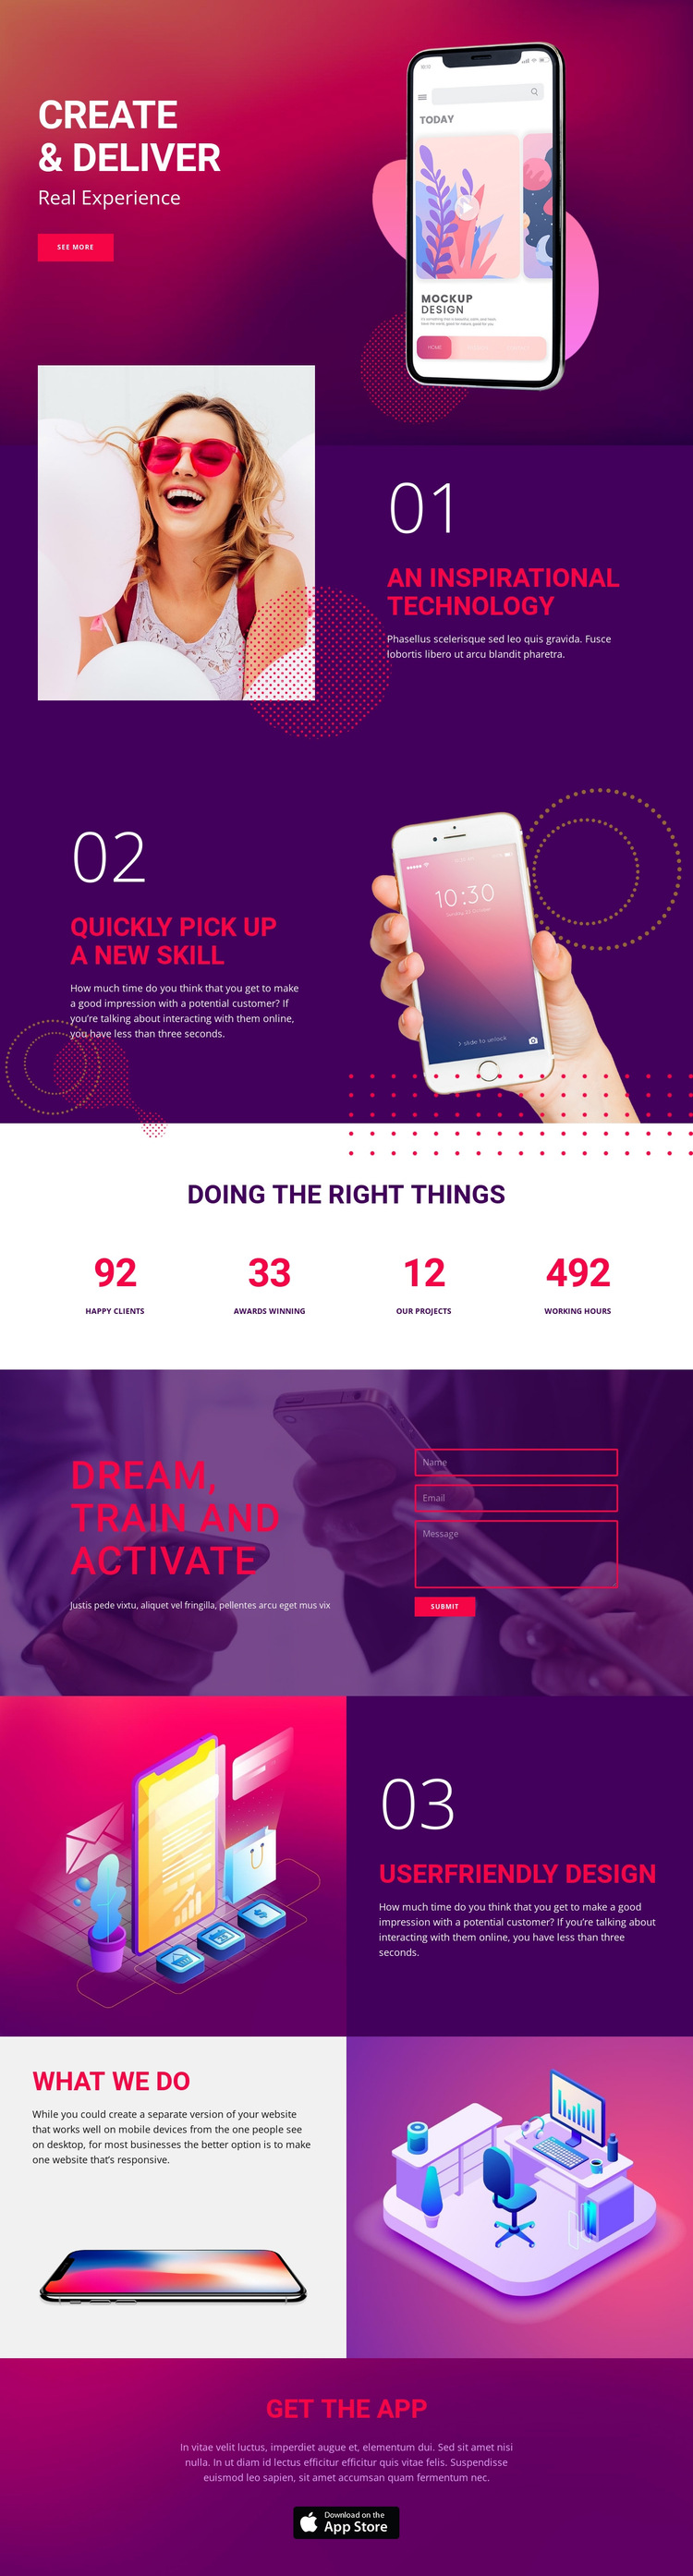 Delivery technology HTML5 Template